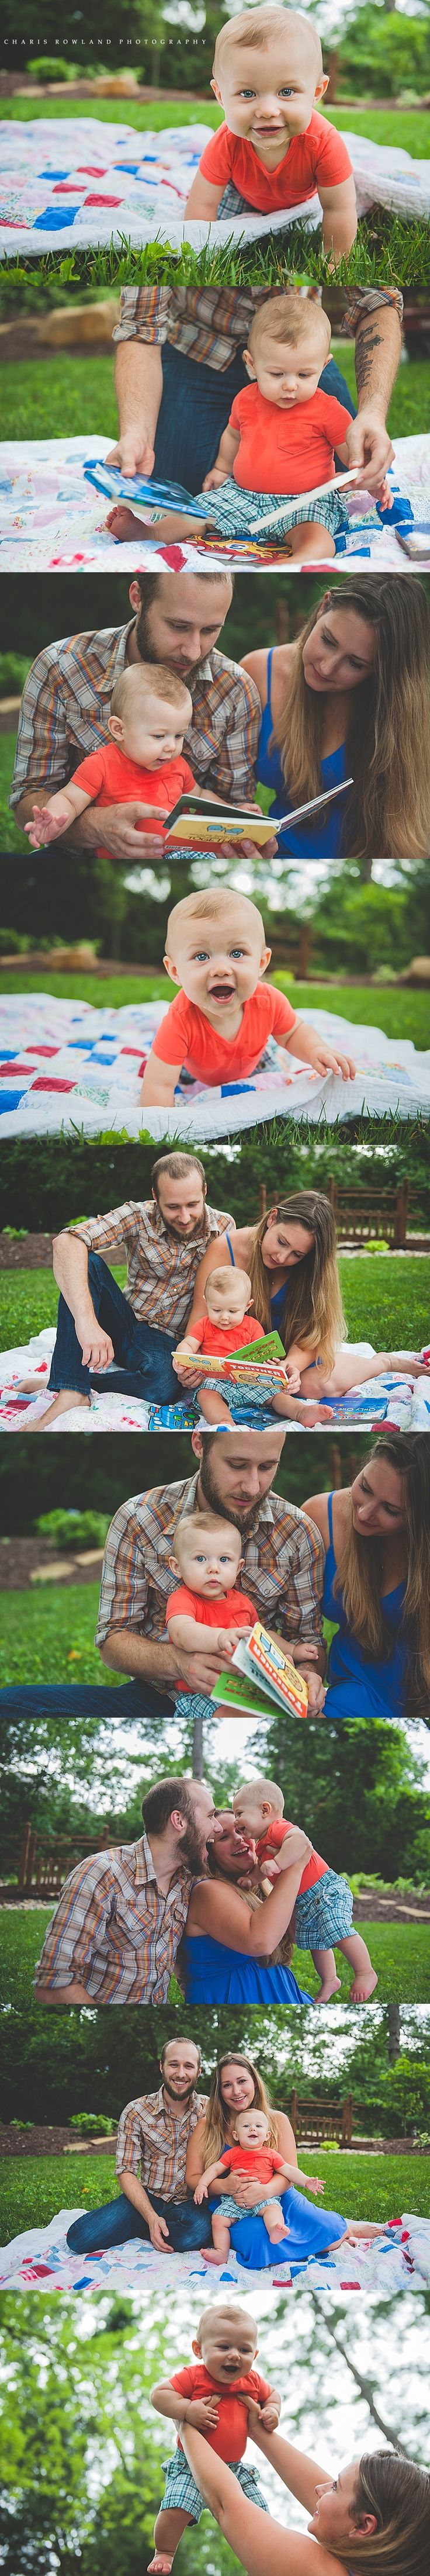 baby boy photo shoot, 6 month boy photo ideas, 9 month photo ideas, lifestyle photography, backyard session, quilt, books, baby photography, baby with mom and dad,  St. Louis family photographer, Charis Rowland Photography